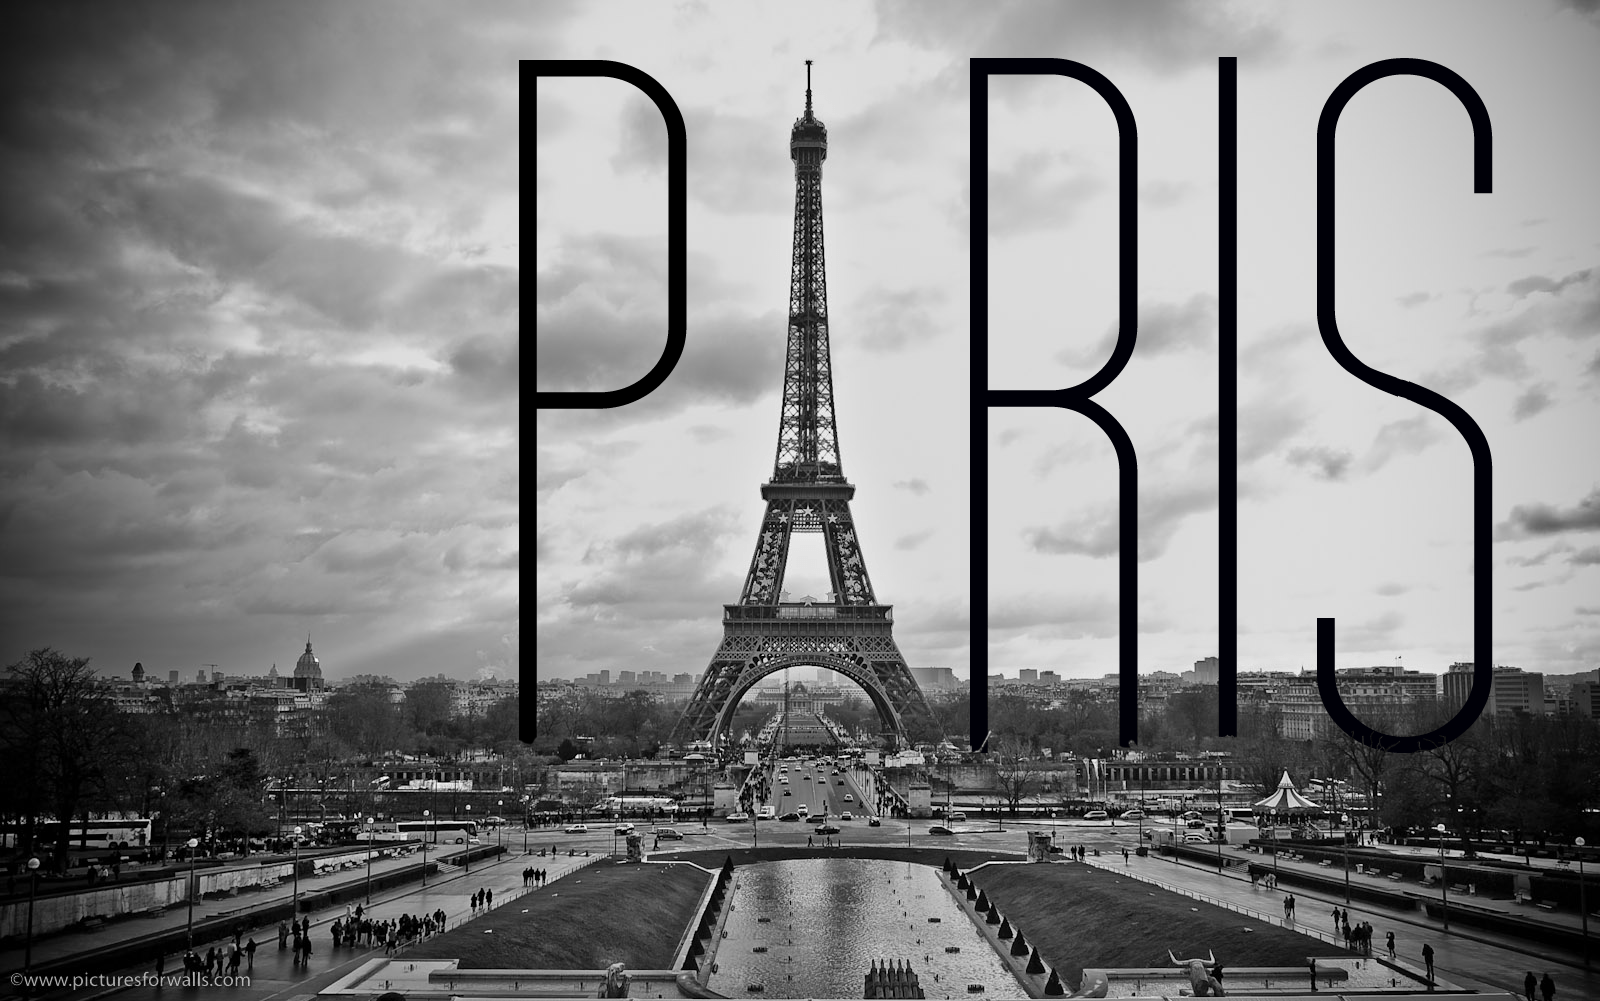 paris computer wallpaper, paris france backgrounds